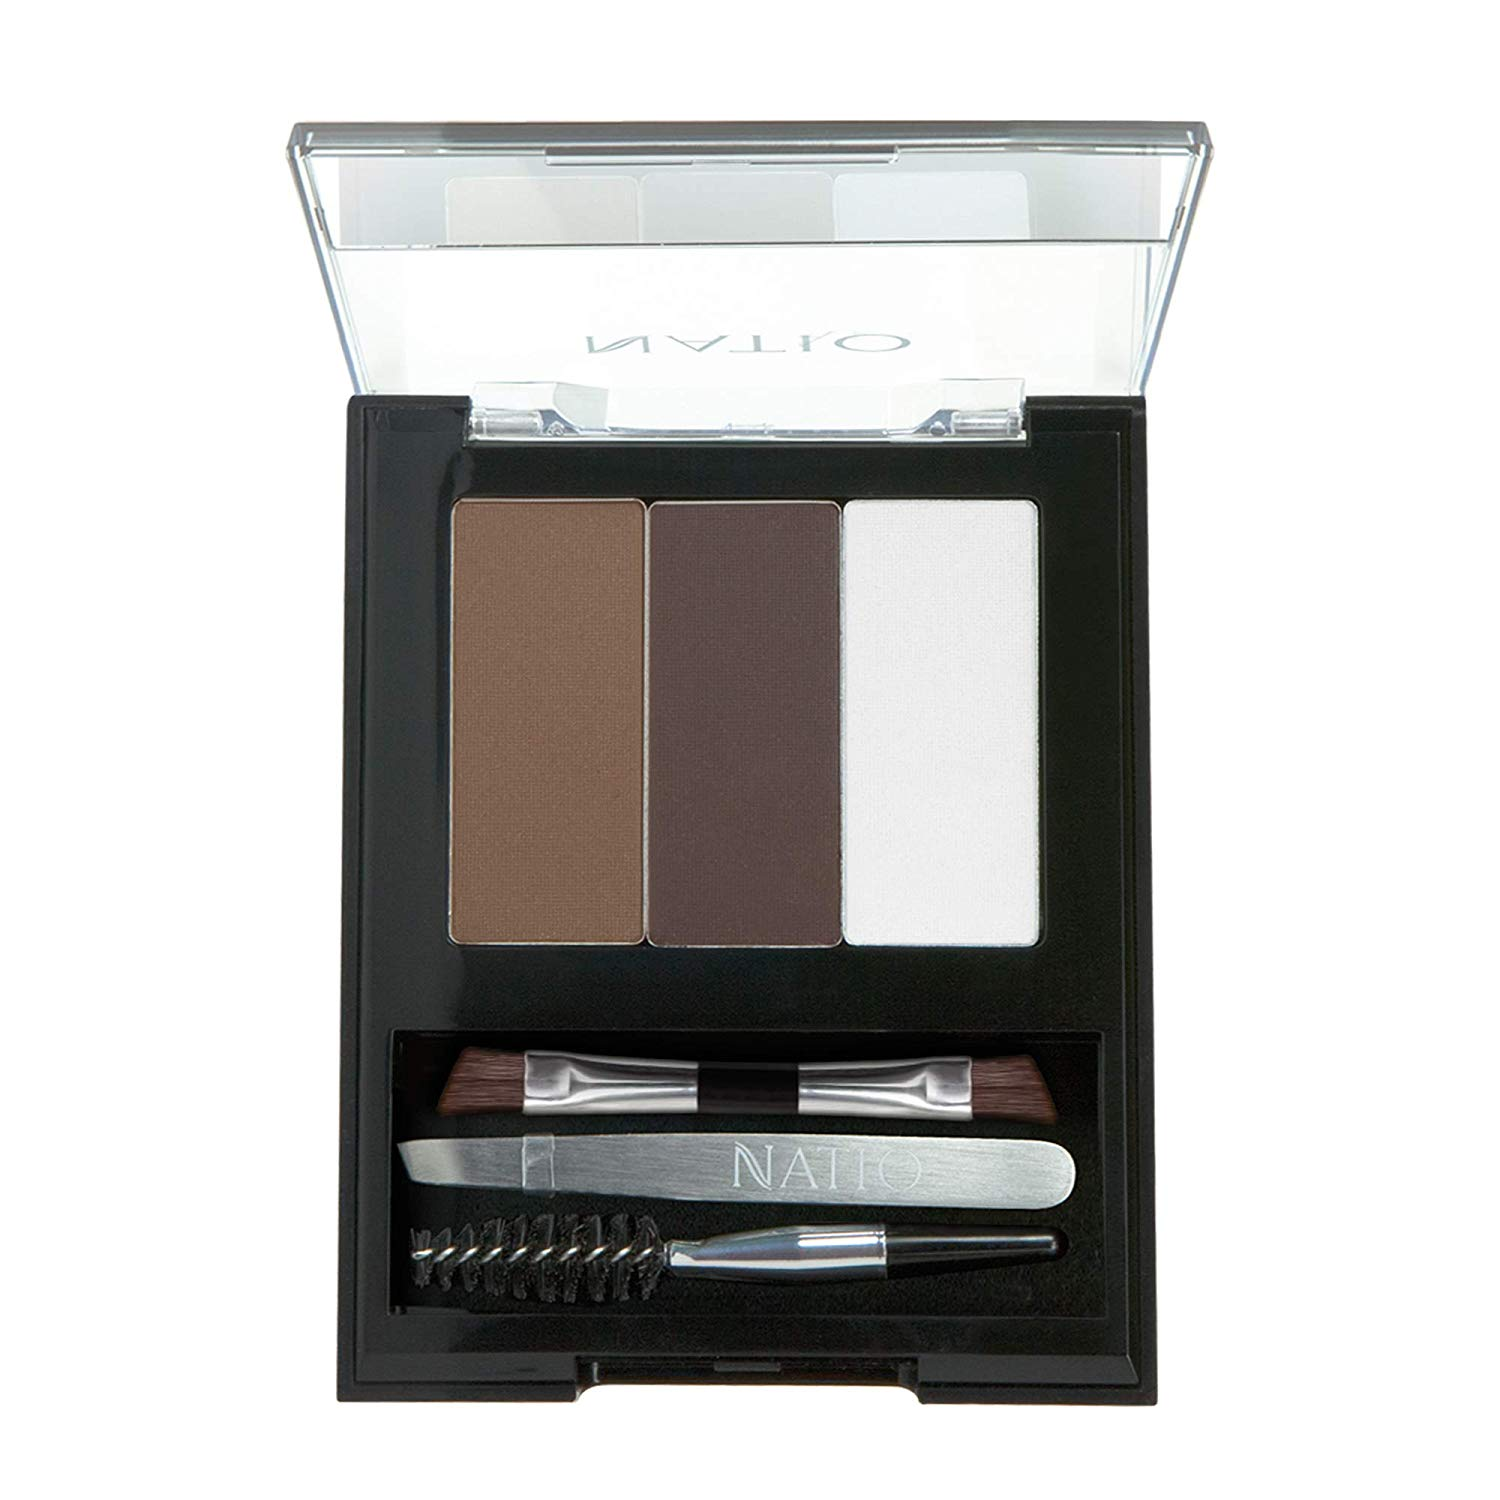 Natio Eyebrow  Eyebrow Kit